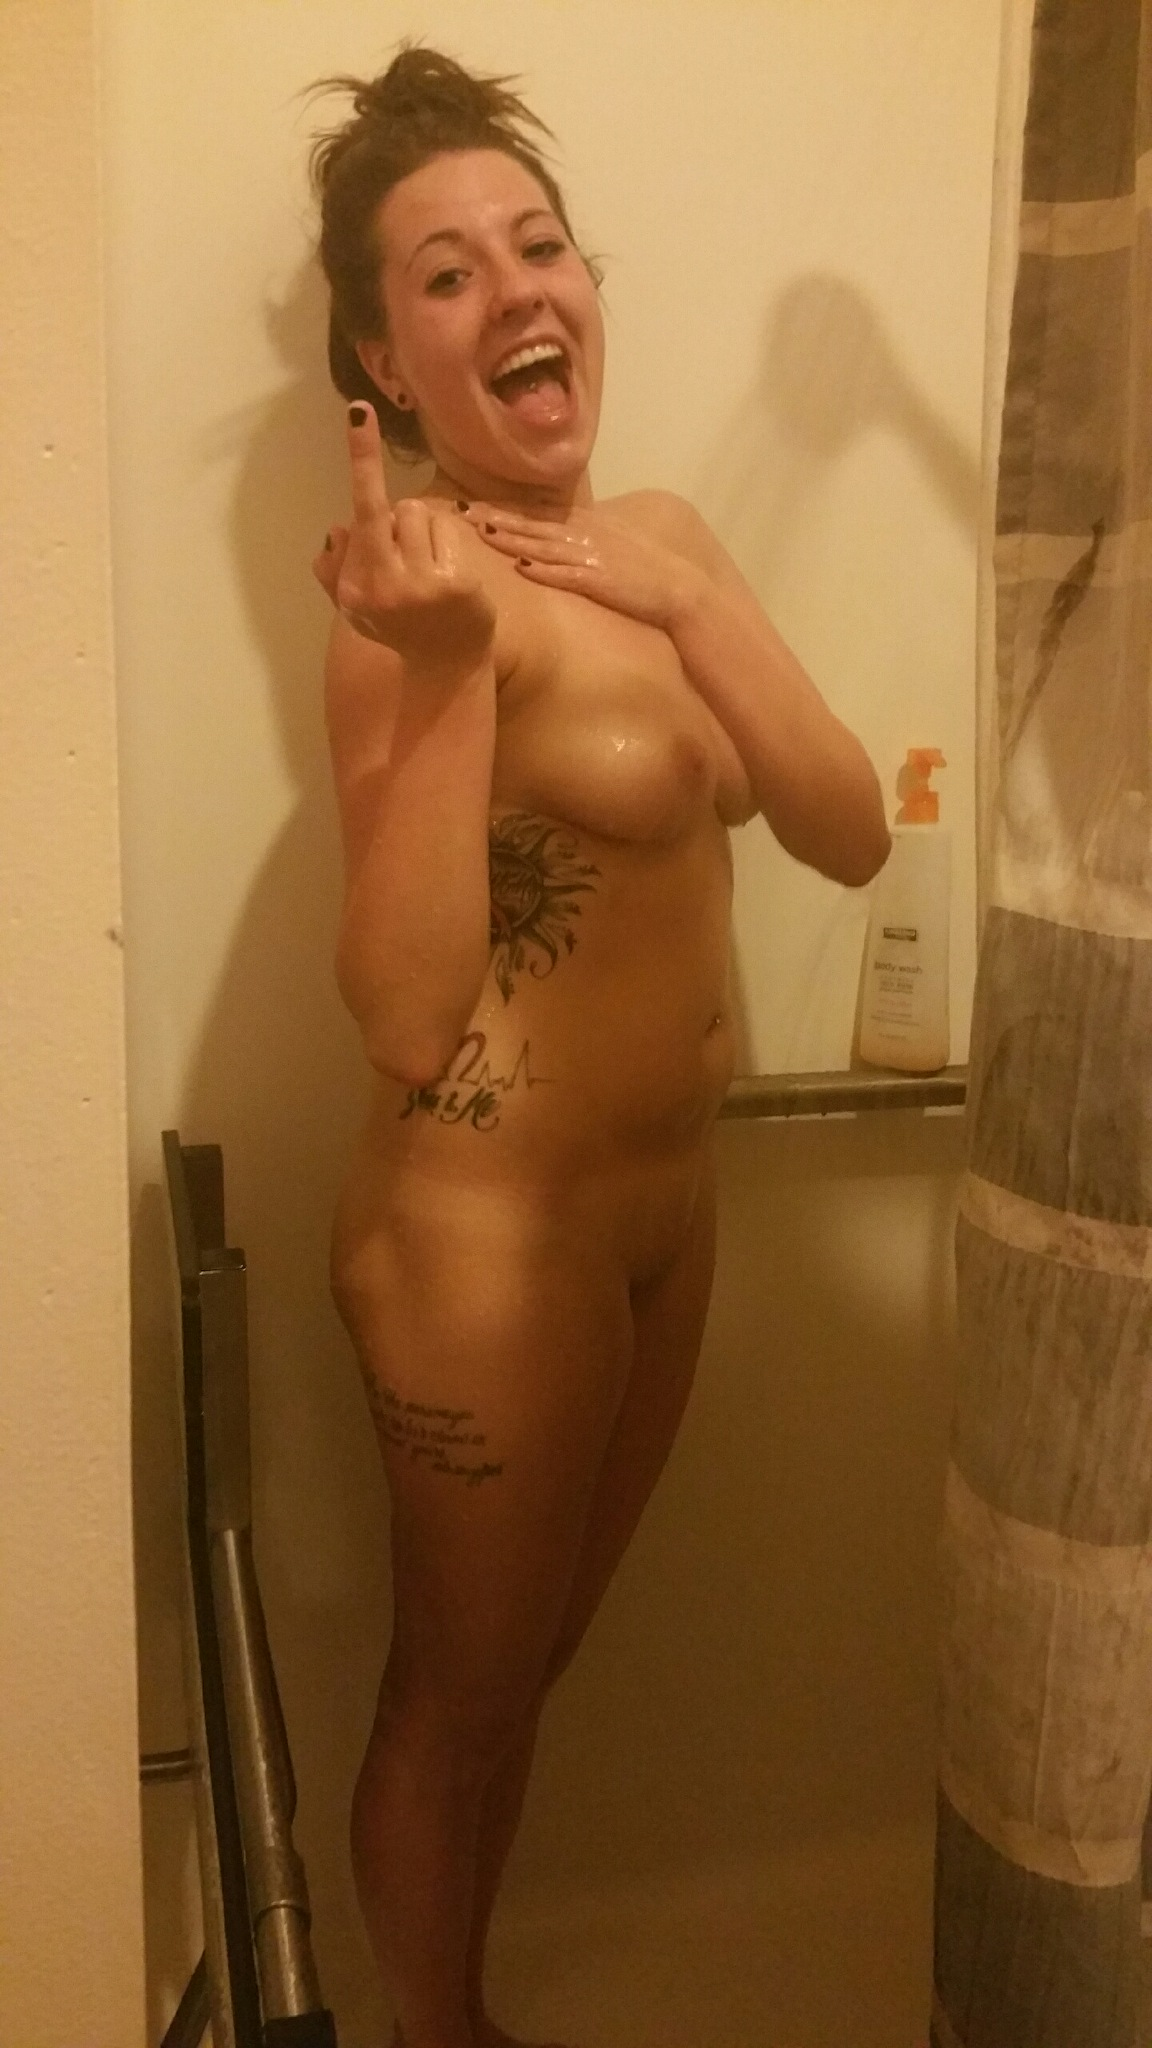 Caught in shower and nude pics 823